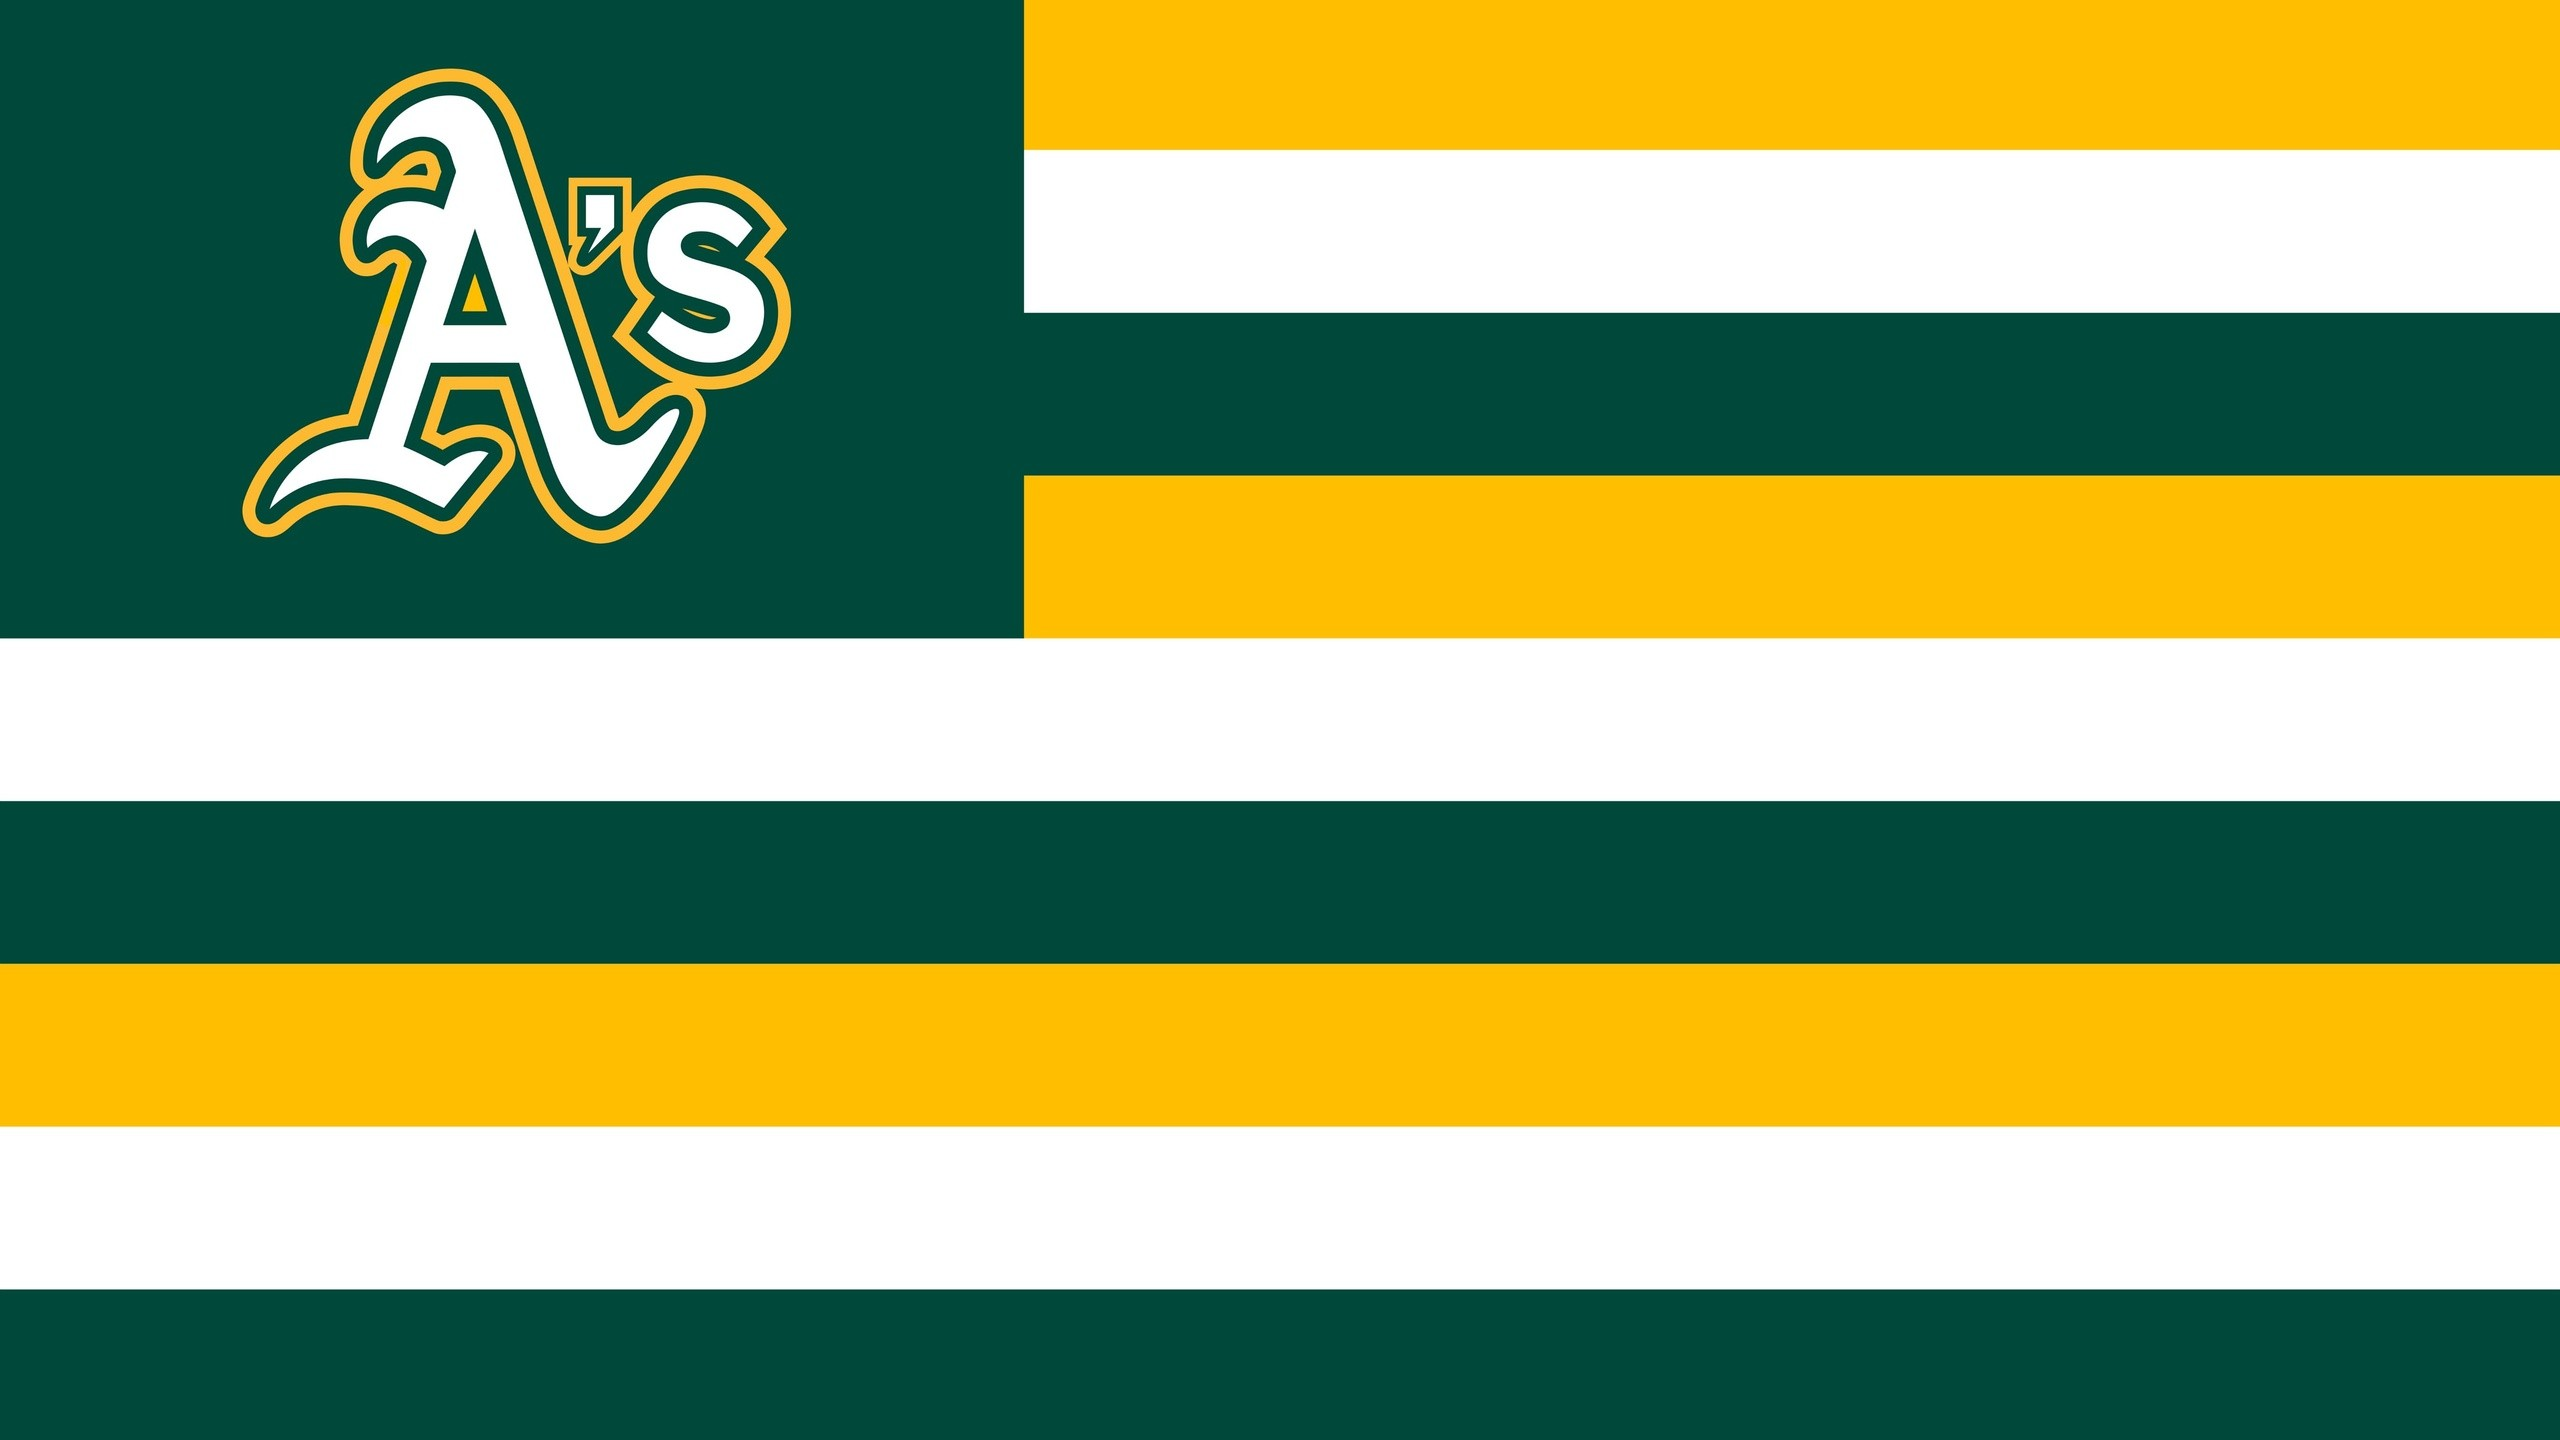 Oakland Athletics Wallpapers 67 Images